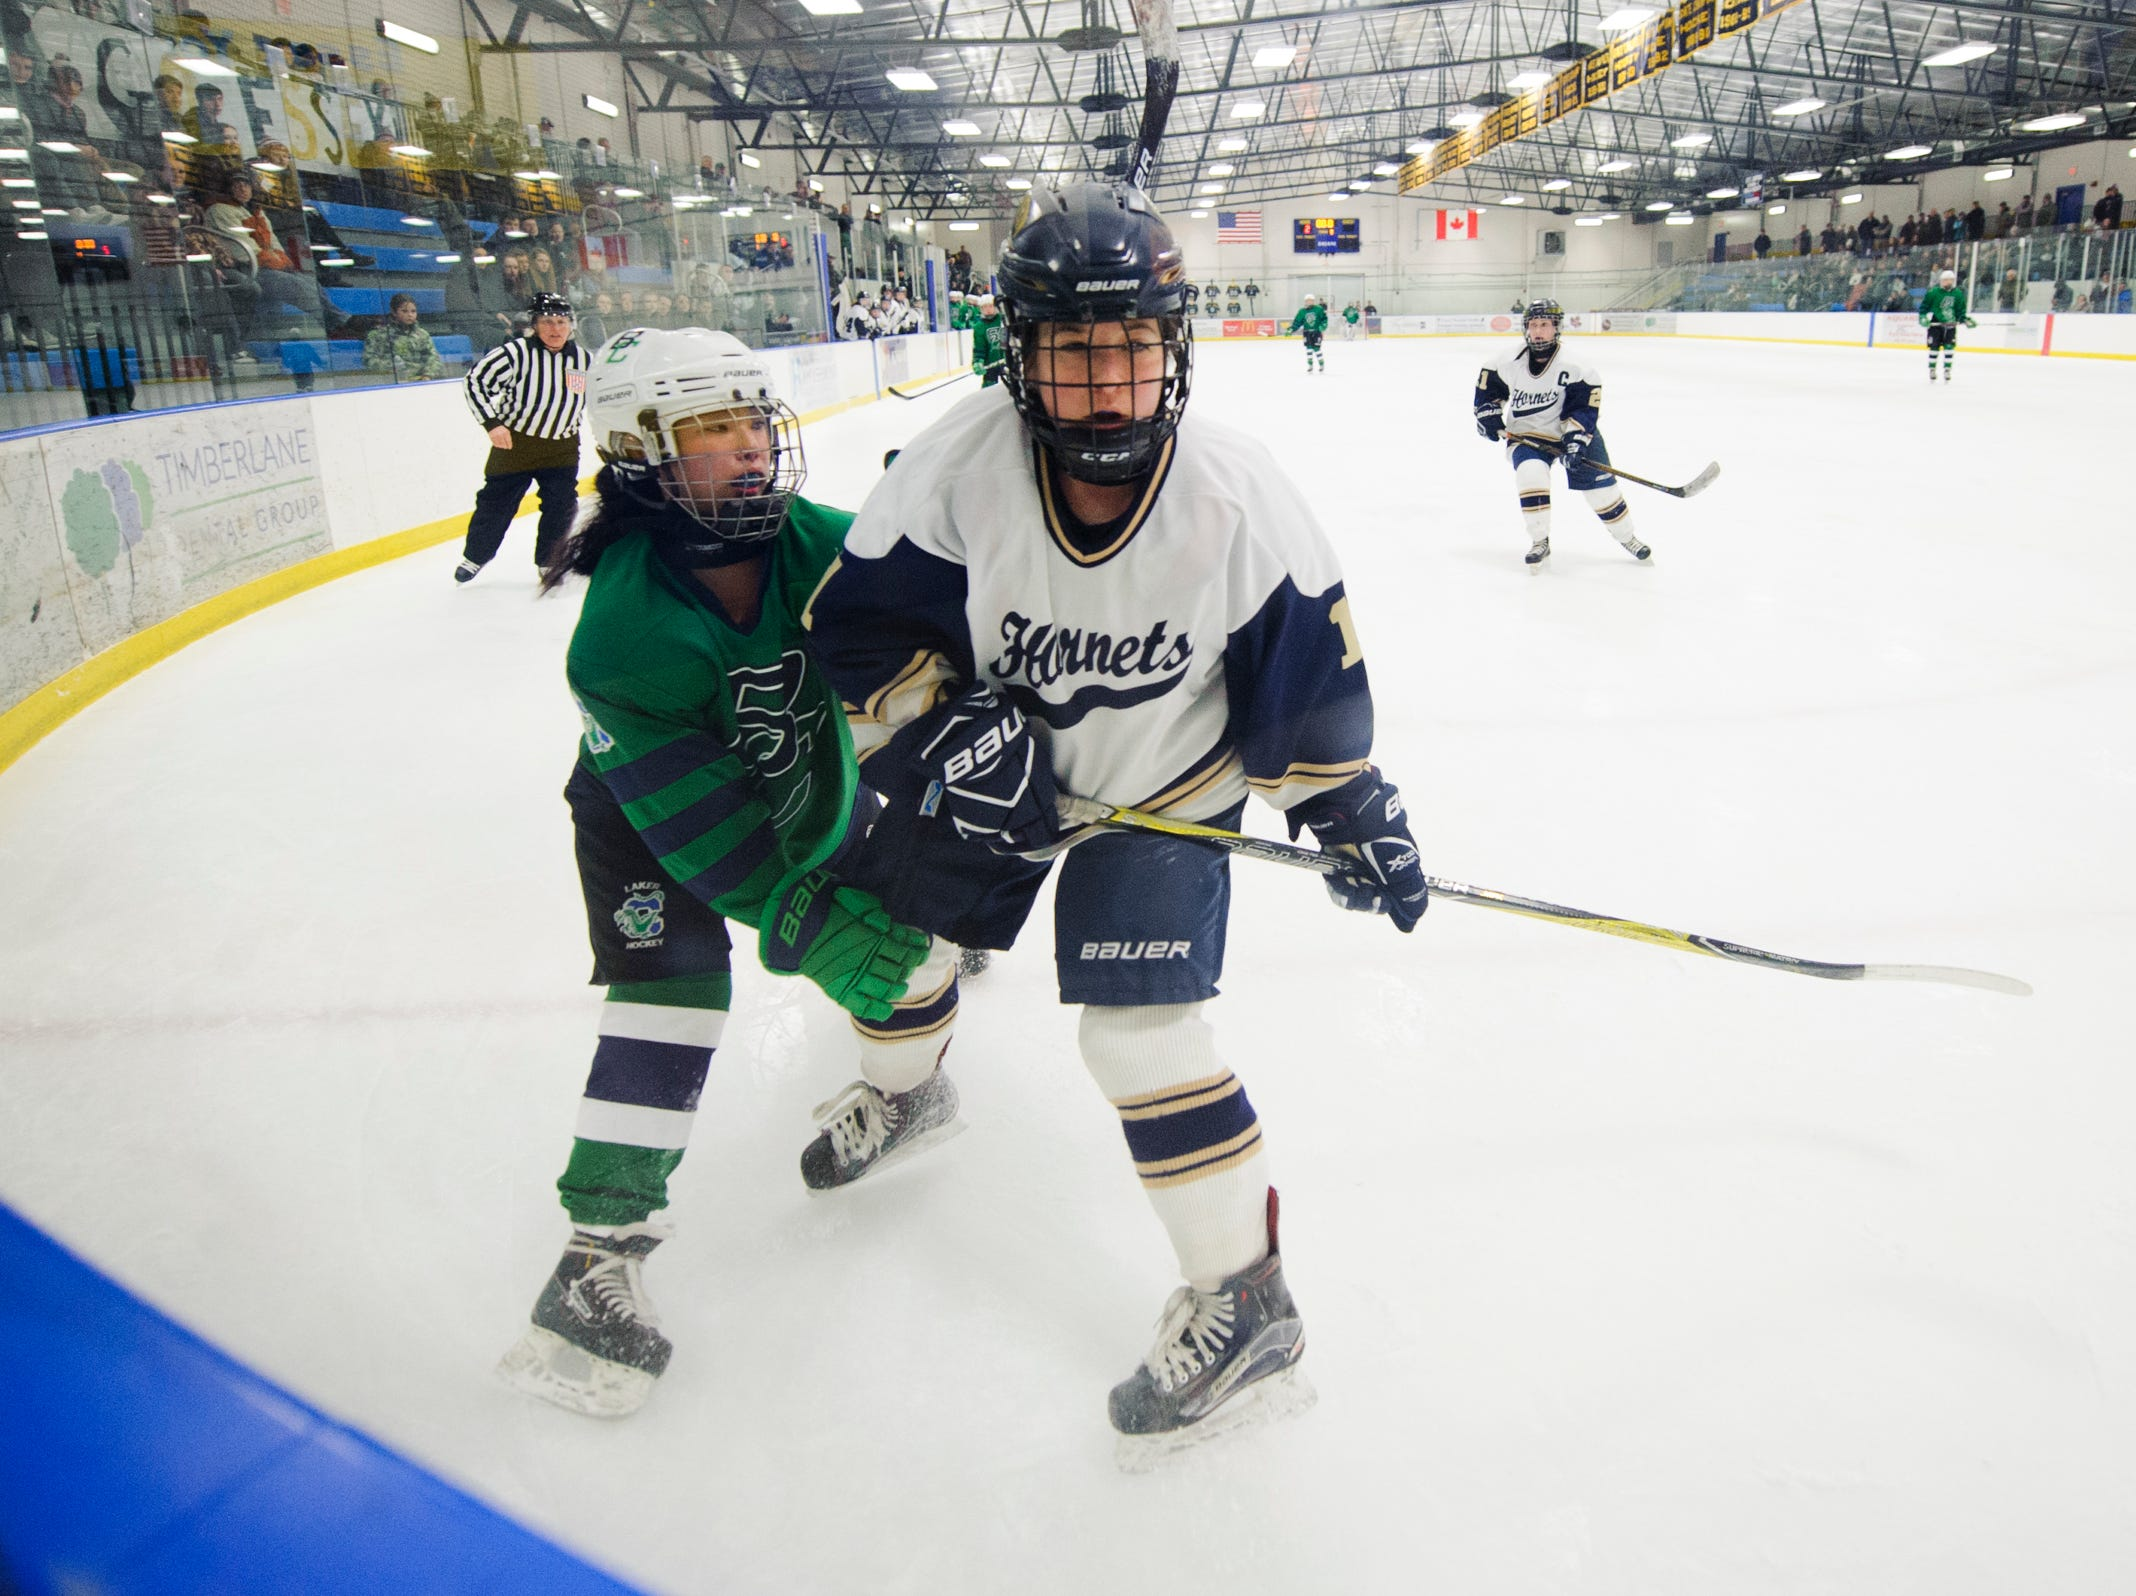 Burlington/Colchester's Olivia Maher (10) battles for the puck with Essex's Francesca Martin (11) during the girls semi final hockey game between the Burlington/Colchester Sea Lakers vs. Essex Hornets at Essex skating rink on Saturday afternoon March 9, 2019 in Essex, Vermont.